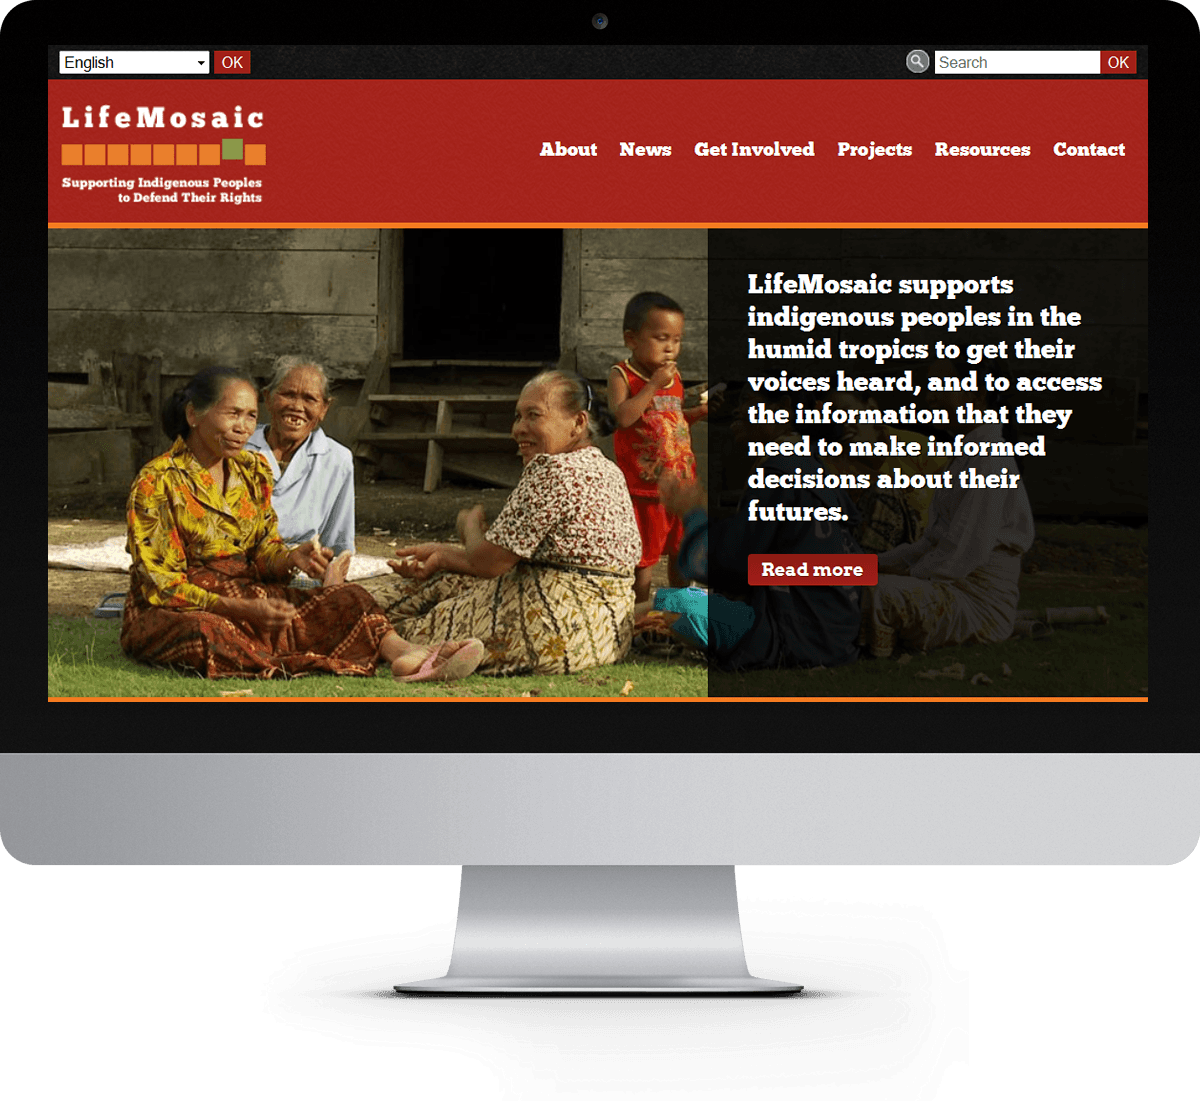 LifeMosaic website